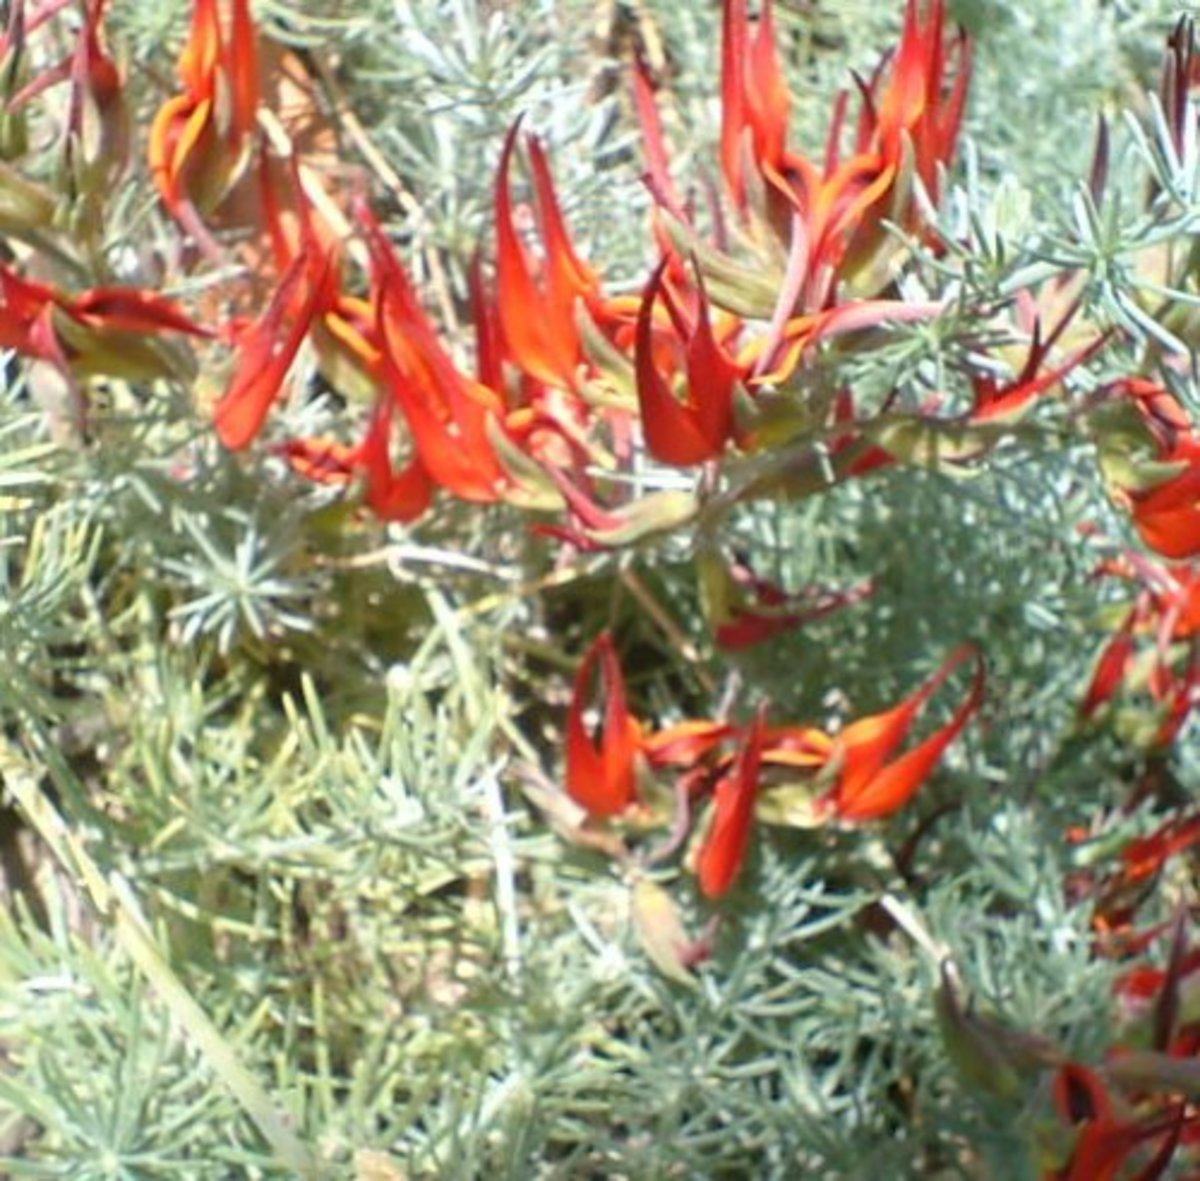 Endangered Canary Islands wildflowers: Tenerife's Parrot's Beak is almost extinct in the wild